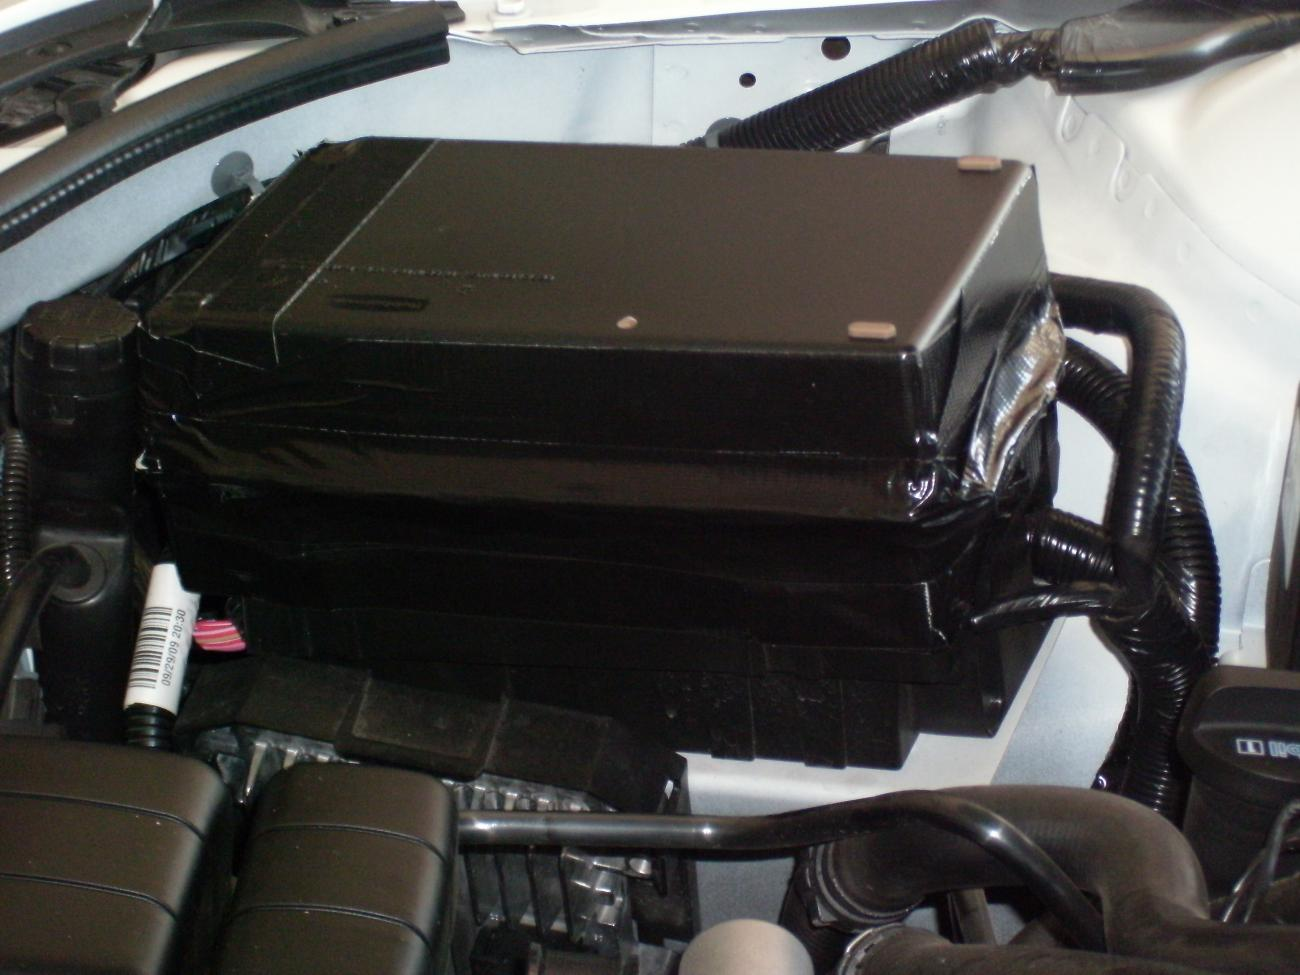 Temporary Cover For Fuse Box Camaro5 Chevy Camaro Forum 2011 Ss Name 026 Views 915 Size 1154 Kb